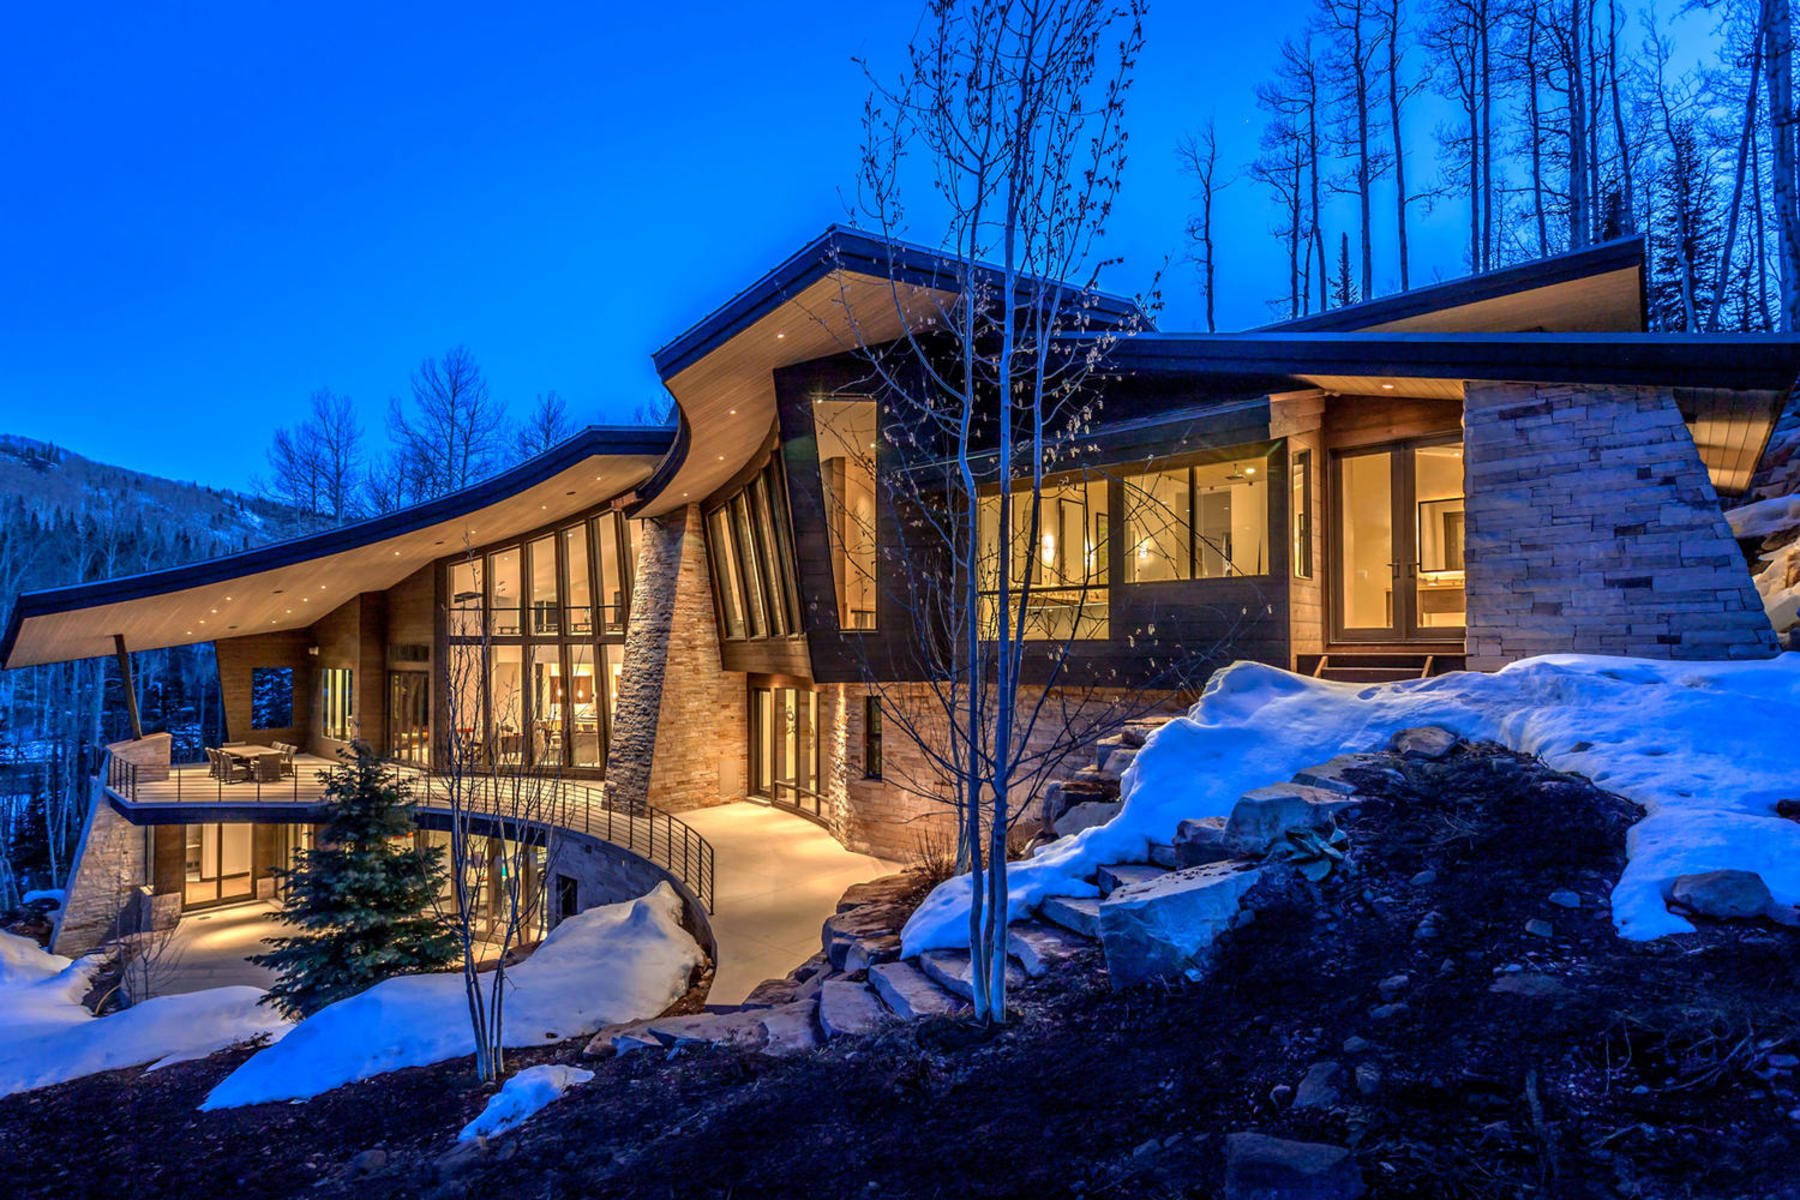 단독 가정 주택 용 매매 에 Stunning Mountain Modern Ski Escape 184 White Pine Canyon Rd Park City, 유타 84060 미국